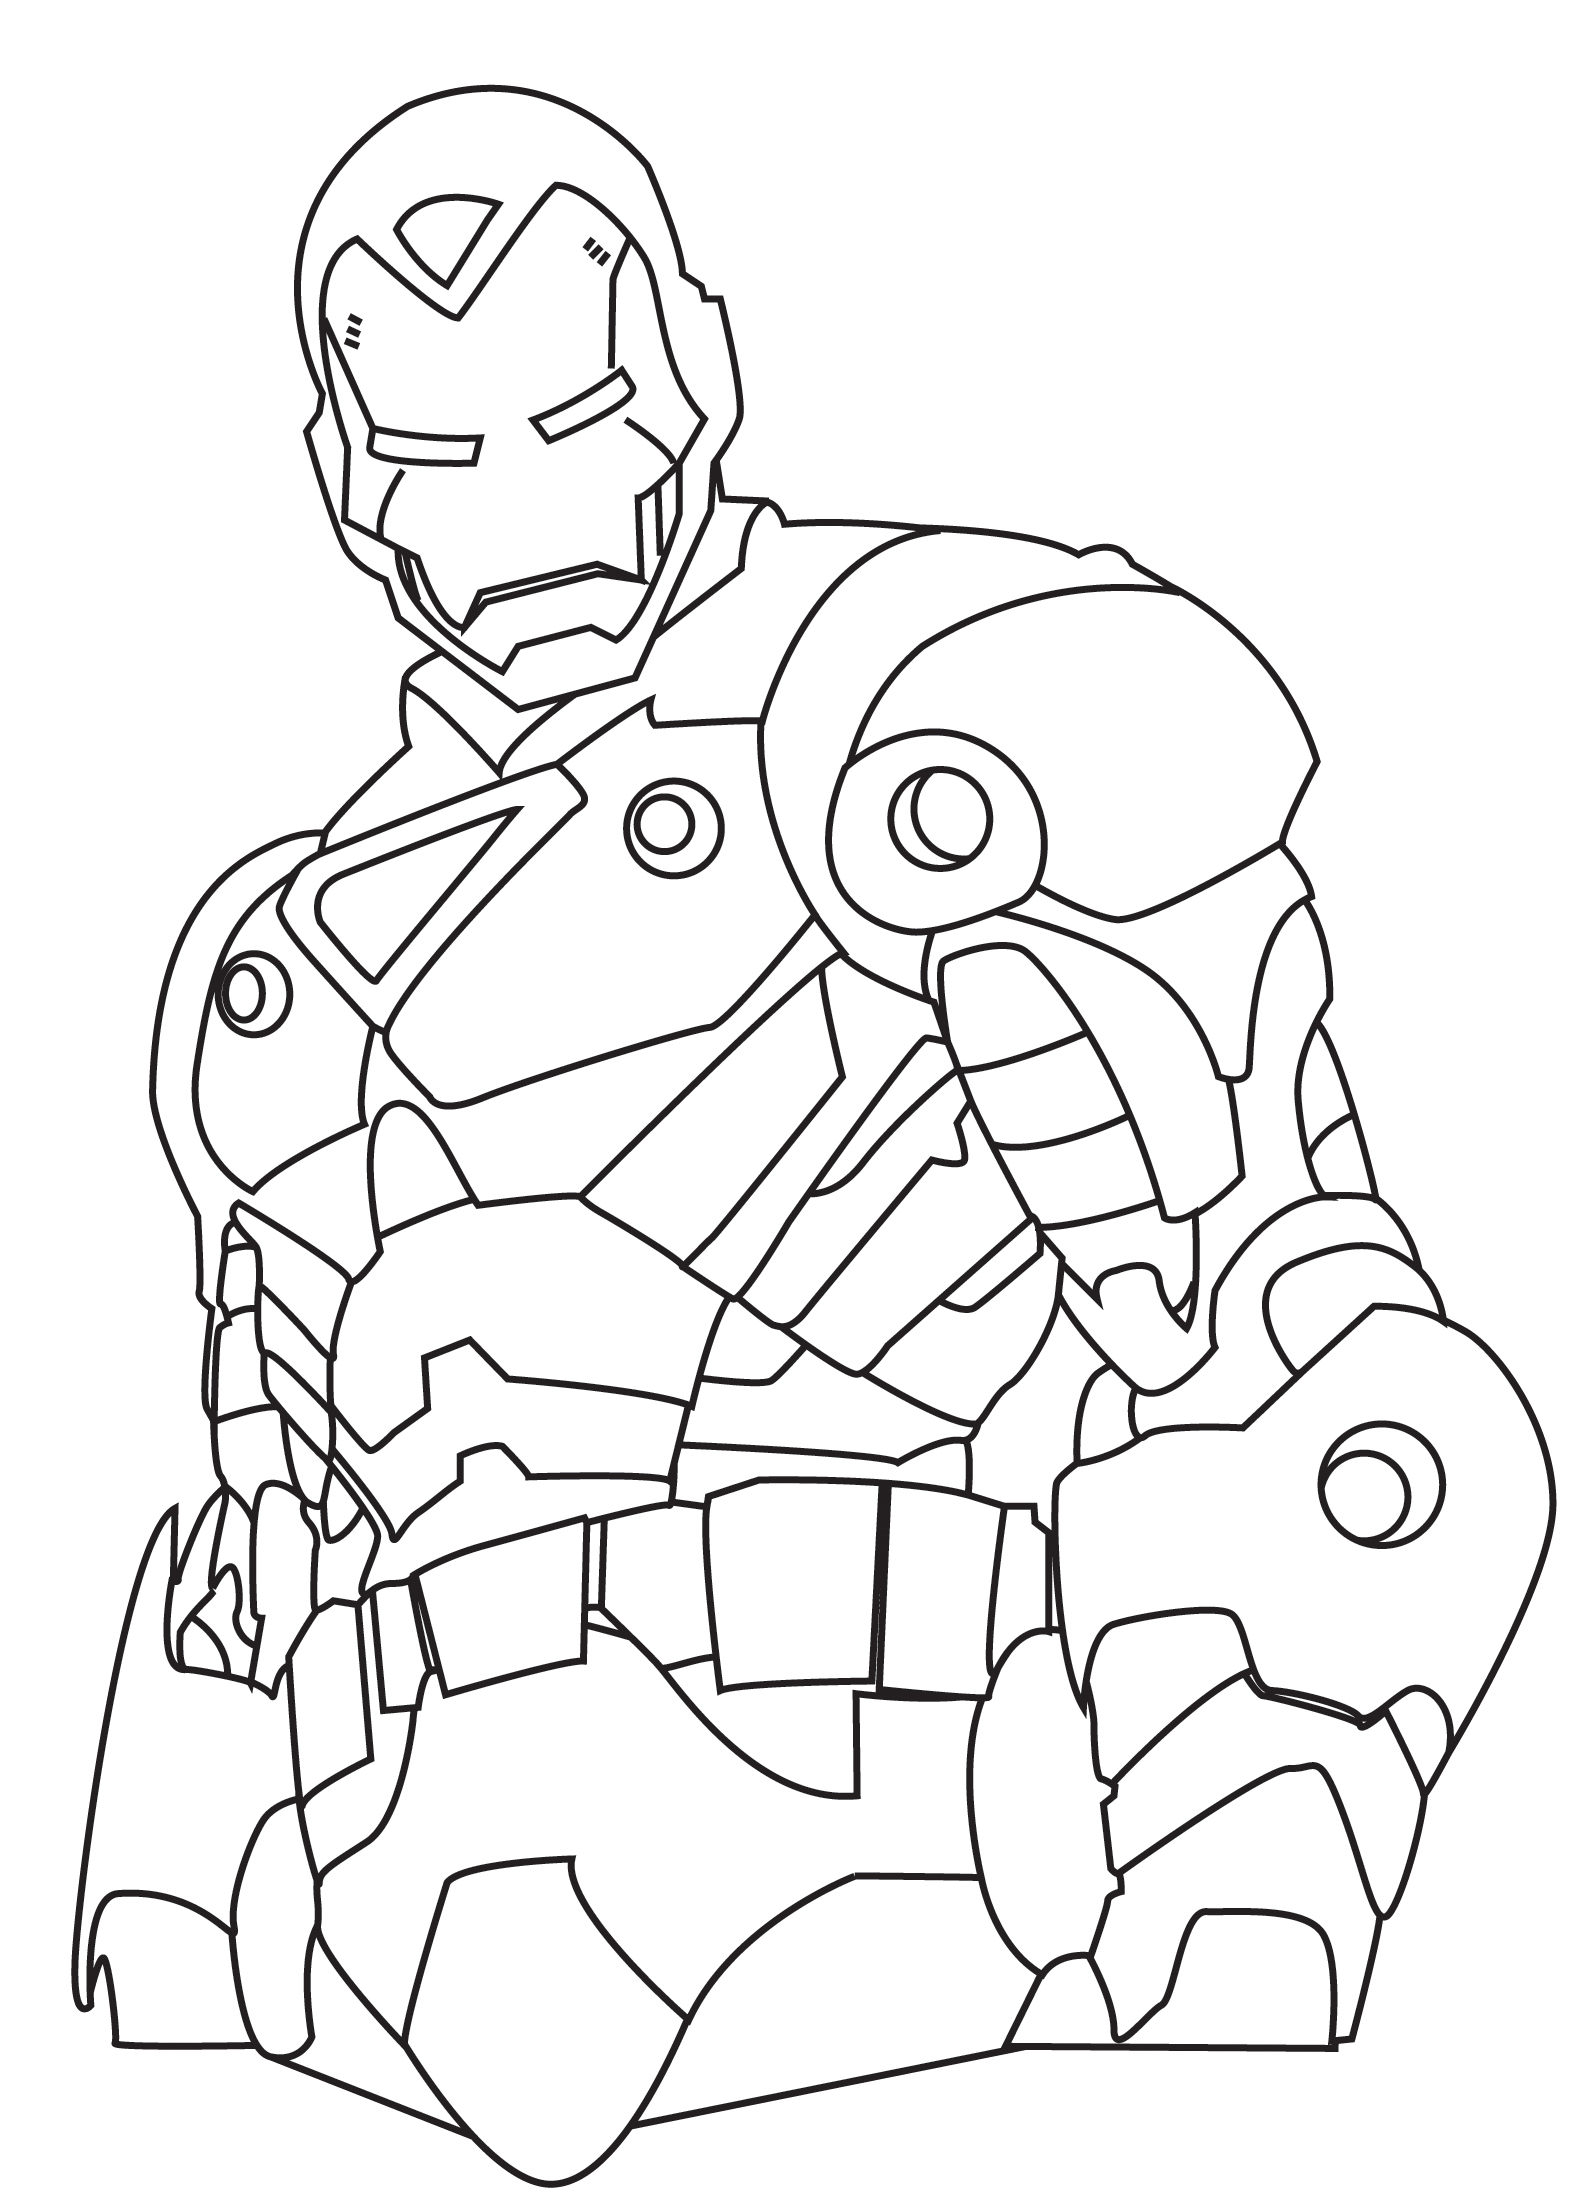 Printable Ironman Coloring Pages Printable Ironman Colouring Pages For Kids Download Free Printable